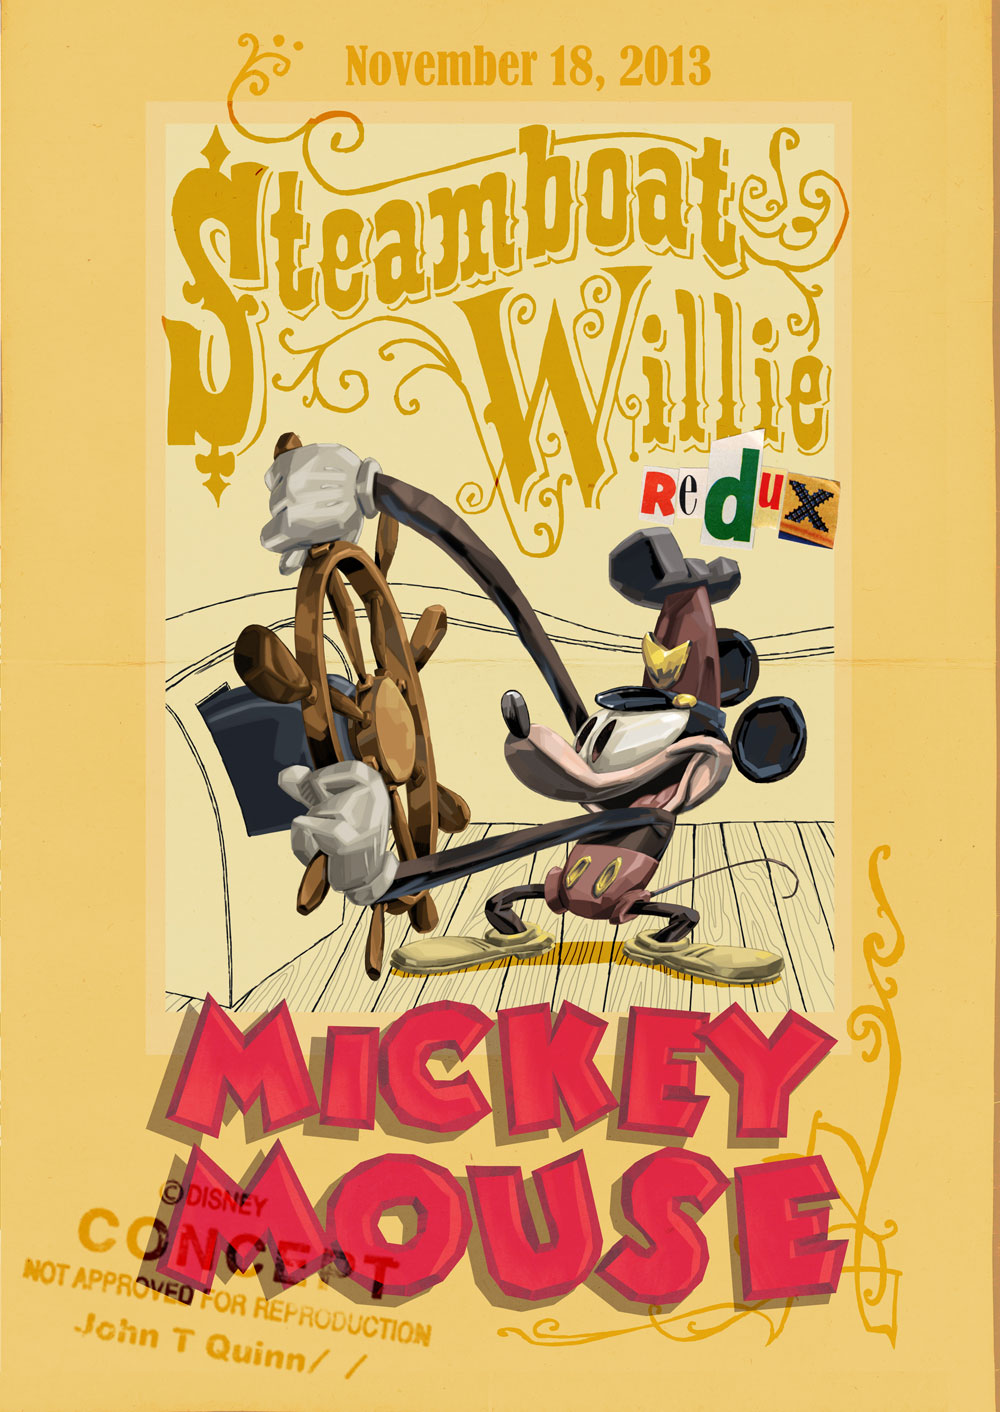 Steamboat Willie Redux